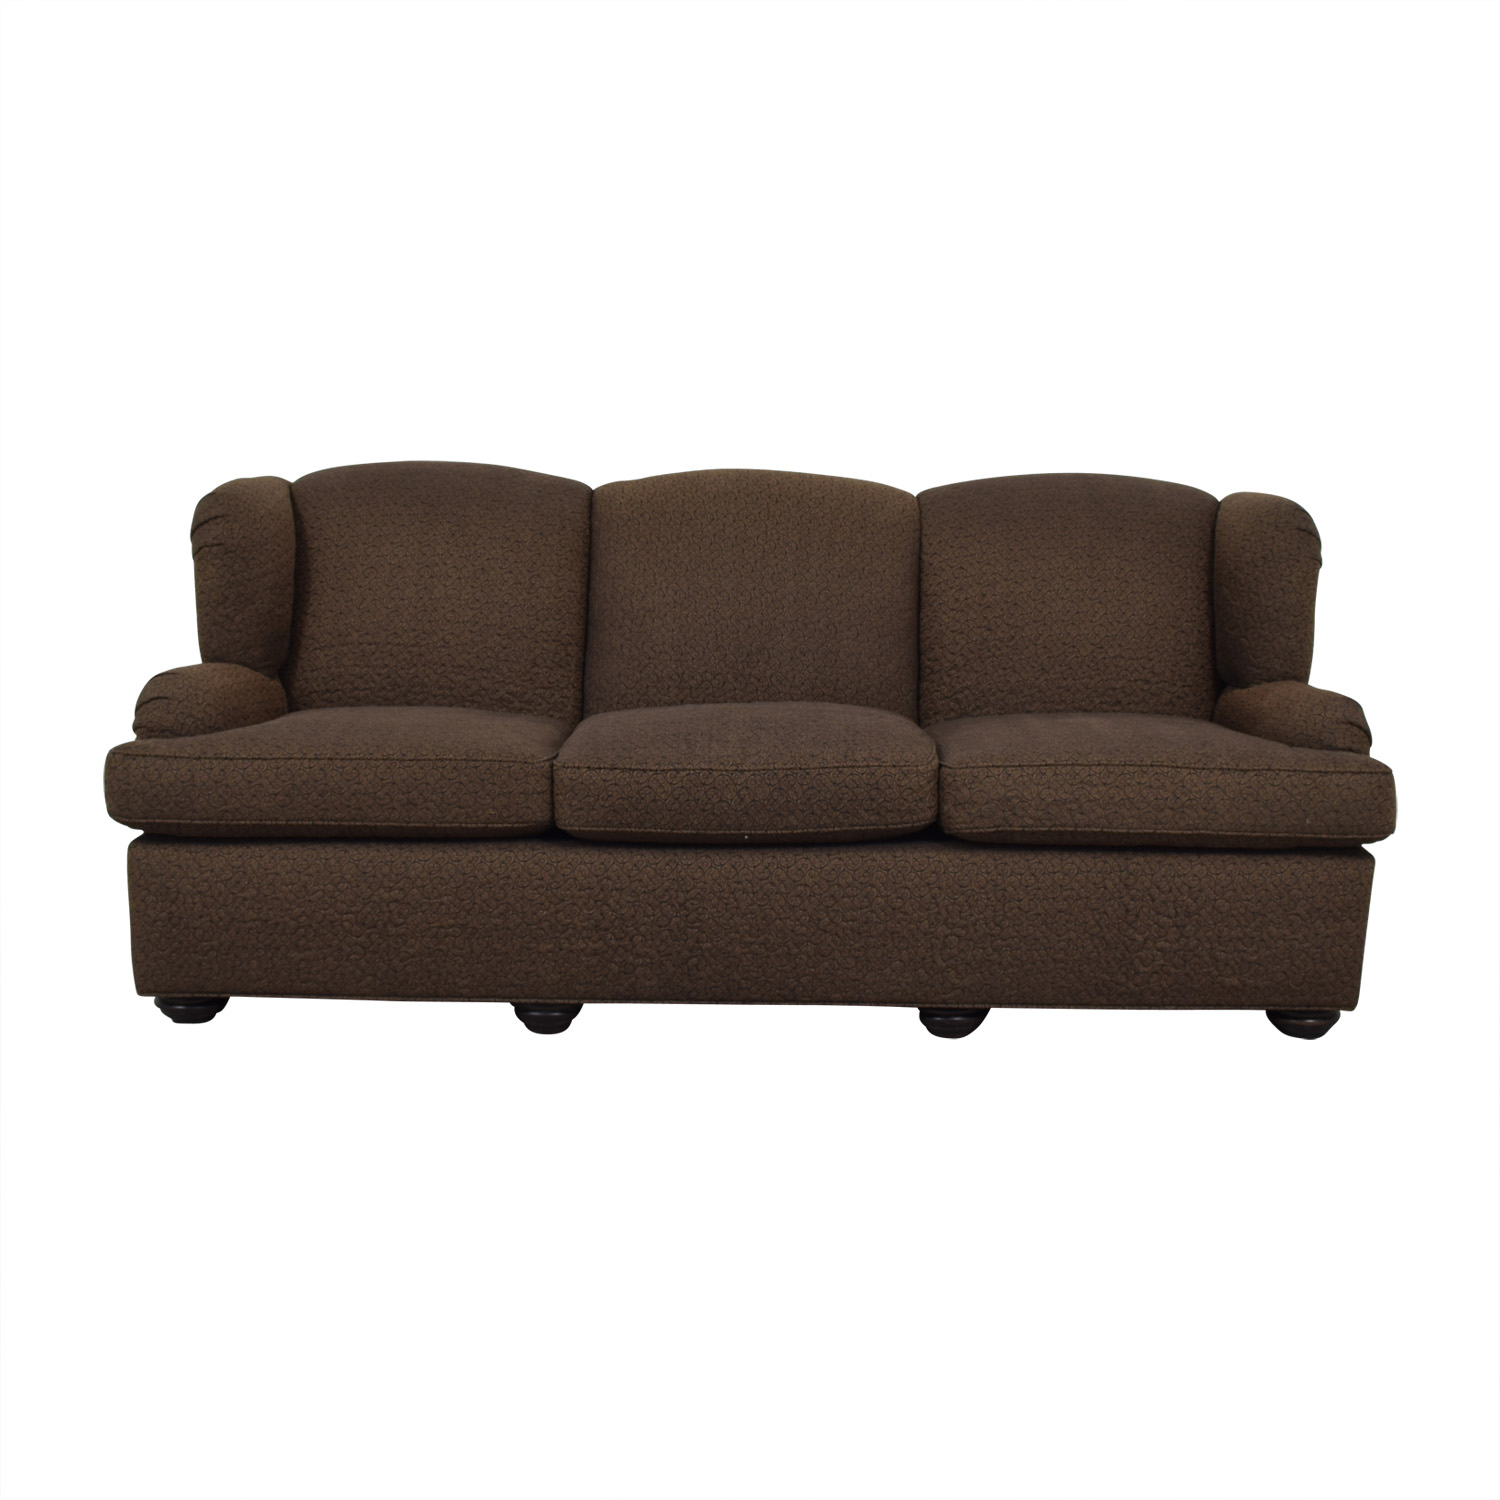 shop Furniture Masters Furniture Masters Brown Three-Cushion Sofa online